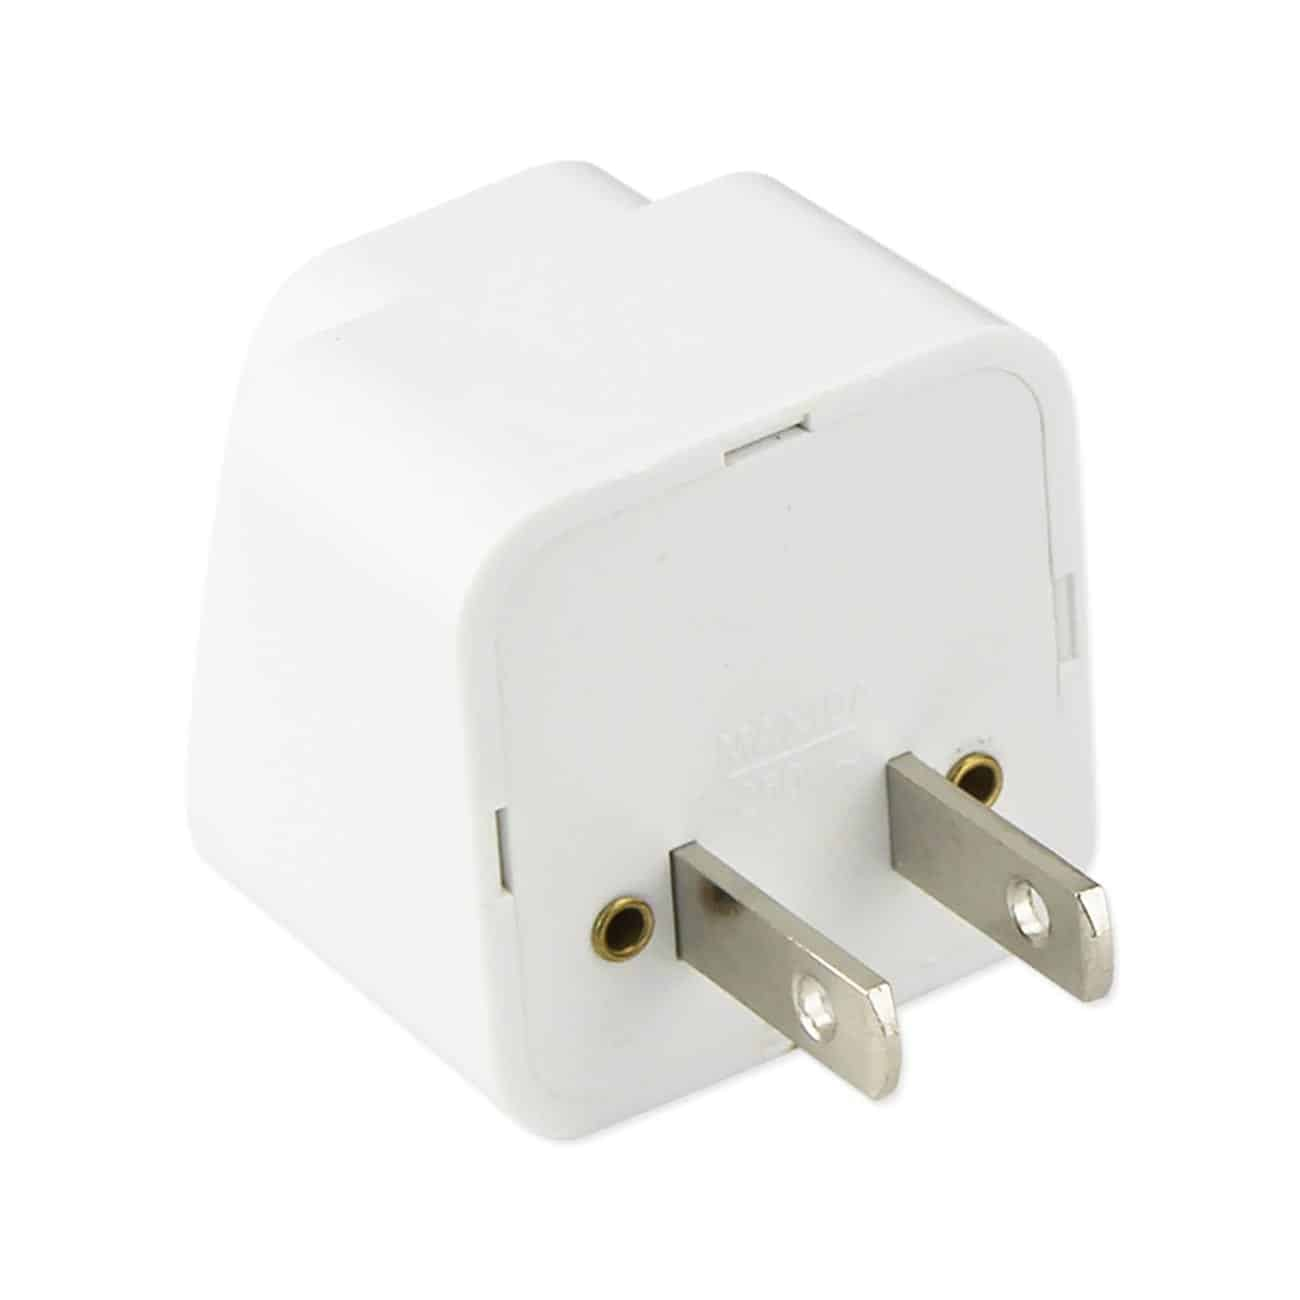 UNIVERSAL TRAVEL ADAPTER CONVERTER-UK/EU/AU TO US TRAVEL PLUG IN WHITE